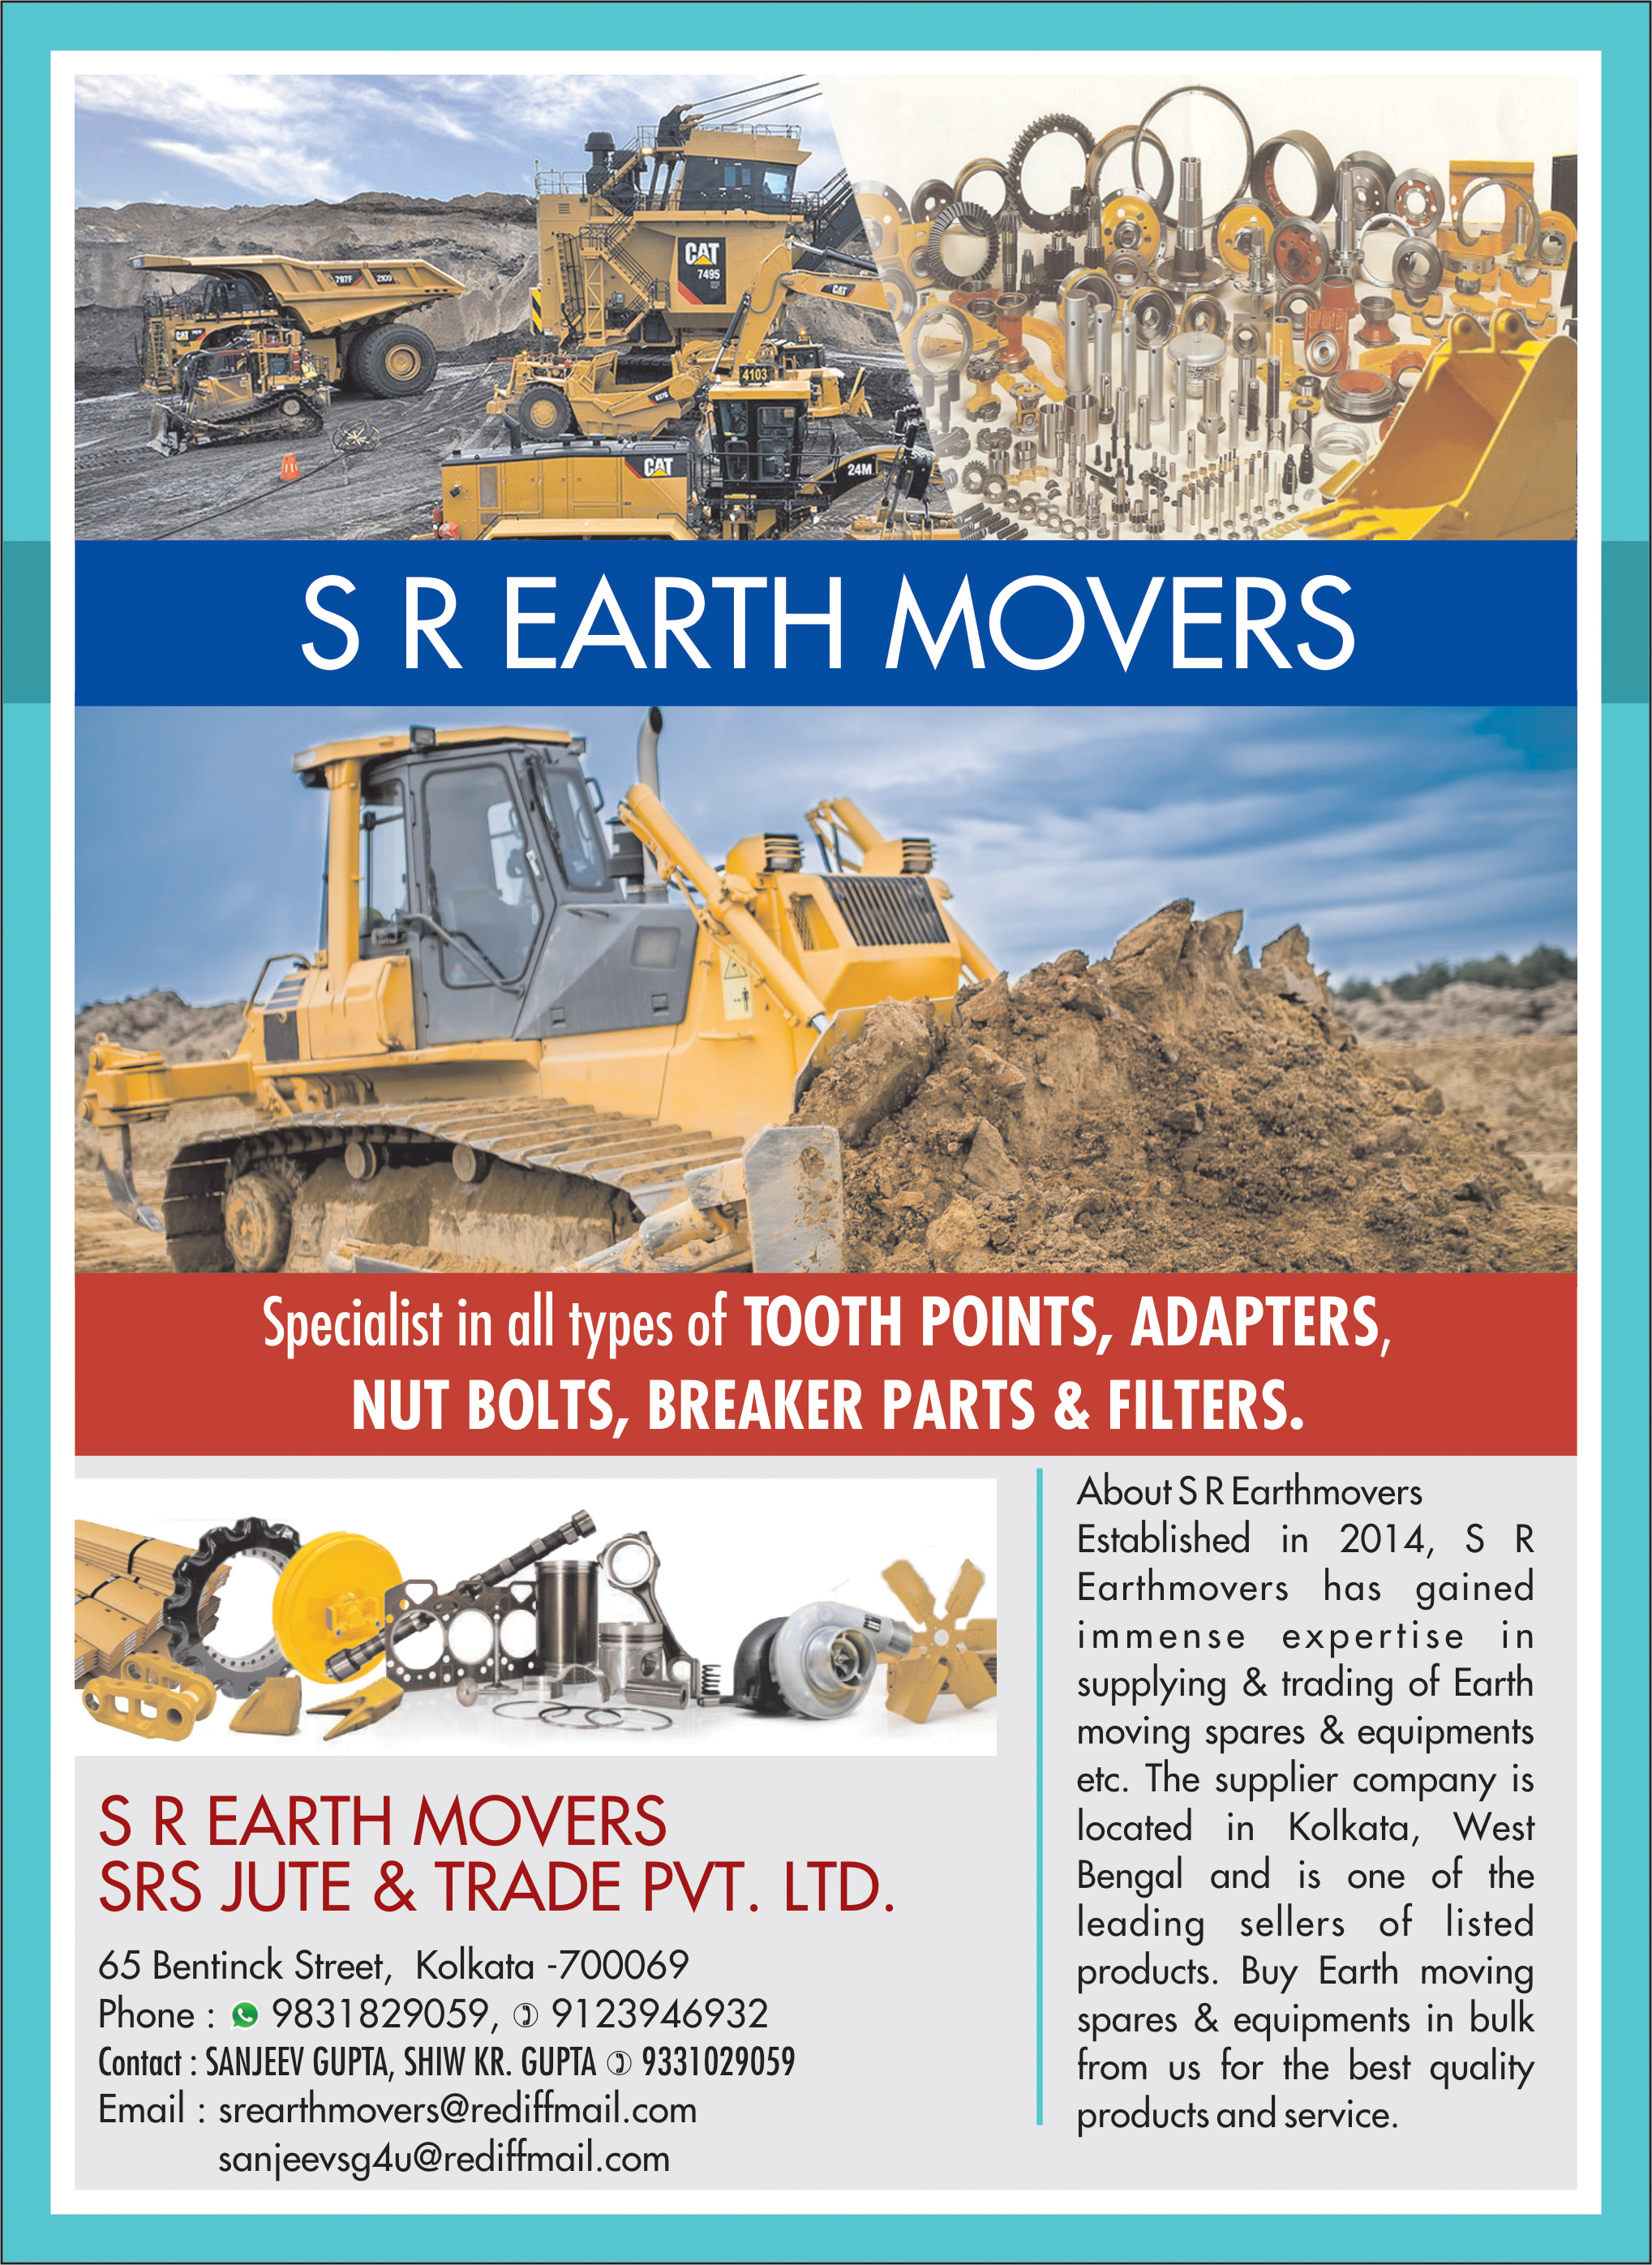 Earthmoving Machinery and Parts, S R EARTHMOVERS, Kolkata,  Yellow Pages, Kolkata, West Bengal